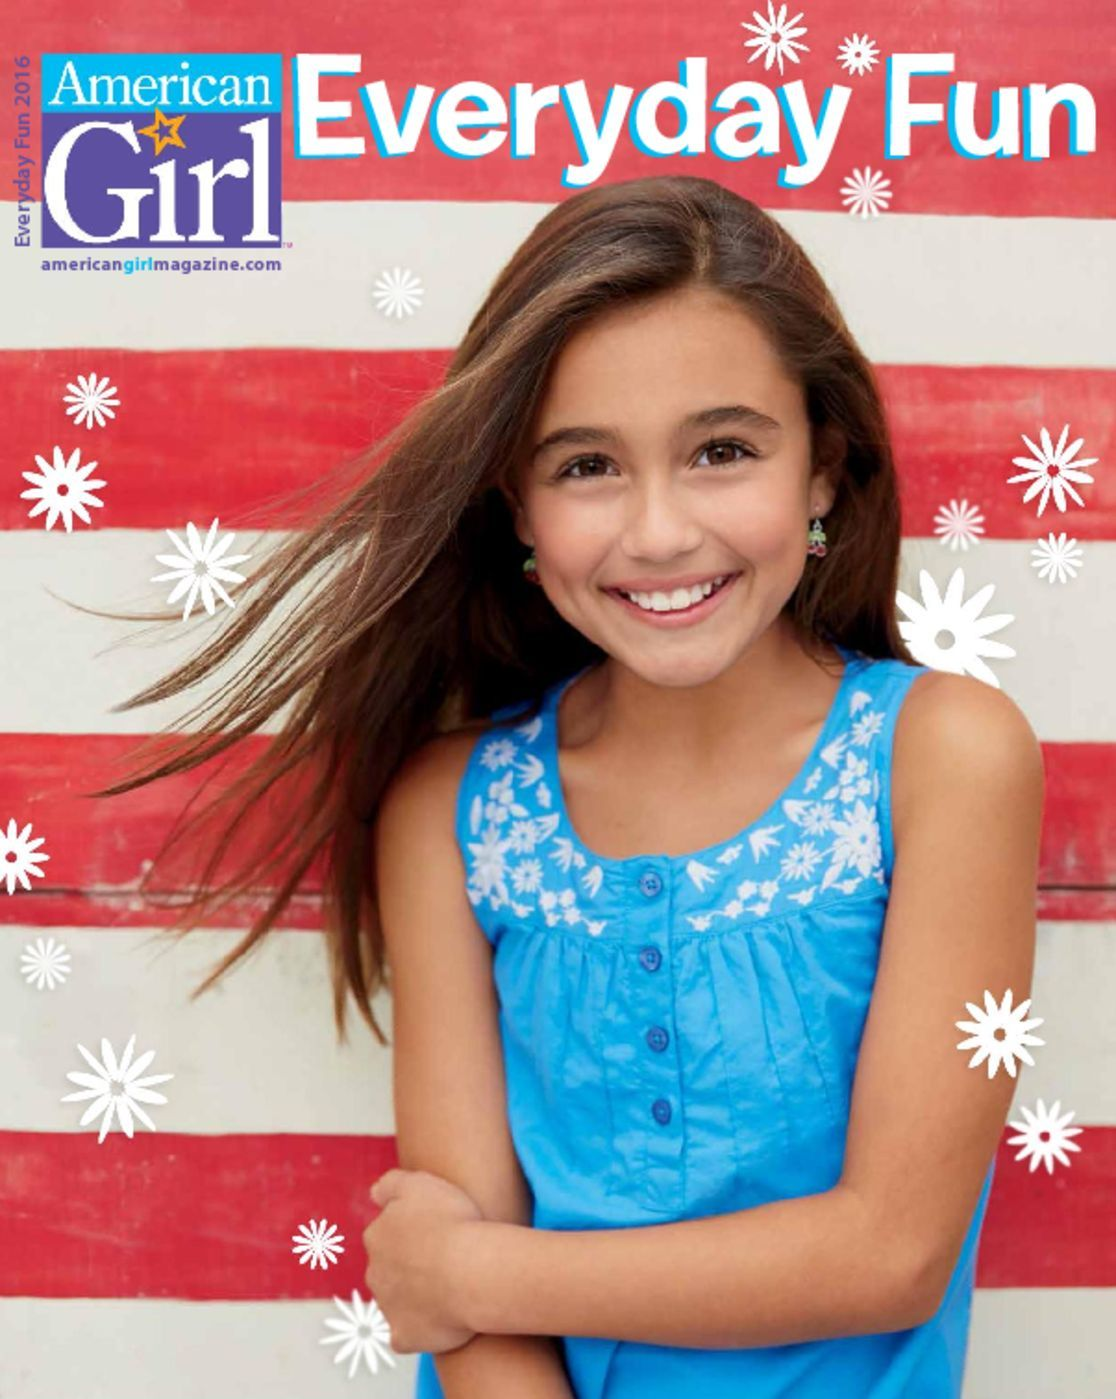 American Girl Doll Basic Knit Dress Pattern And Tutorial: Independence, Confidence, And